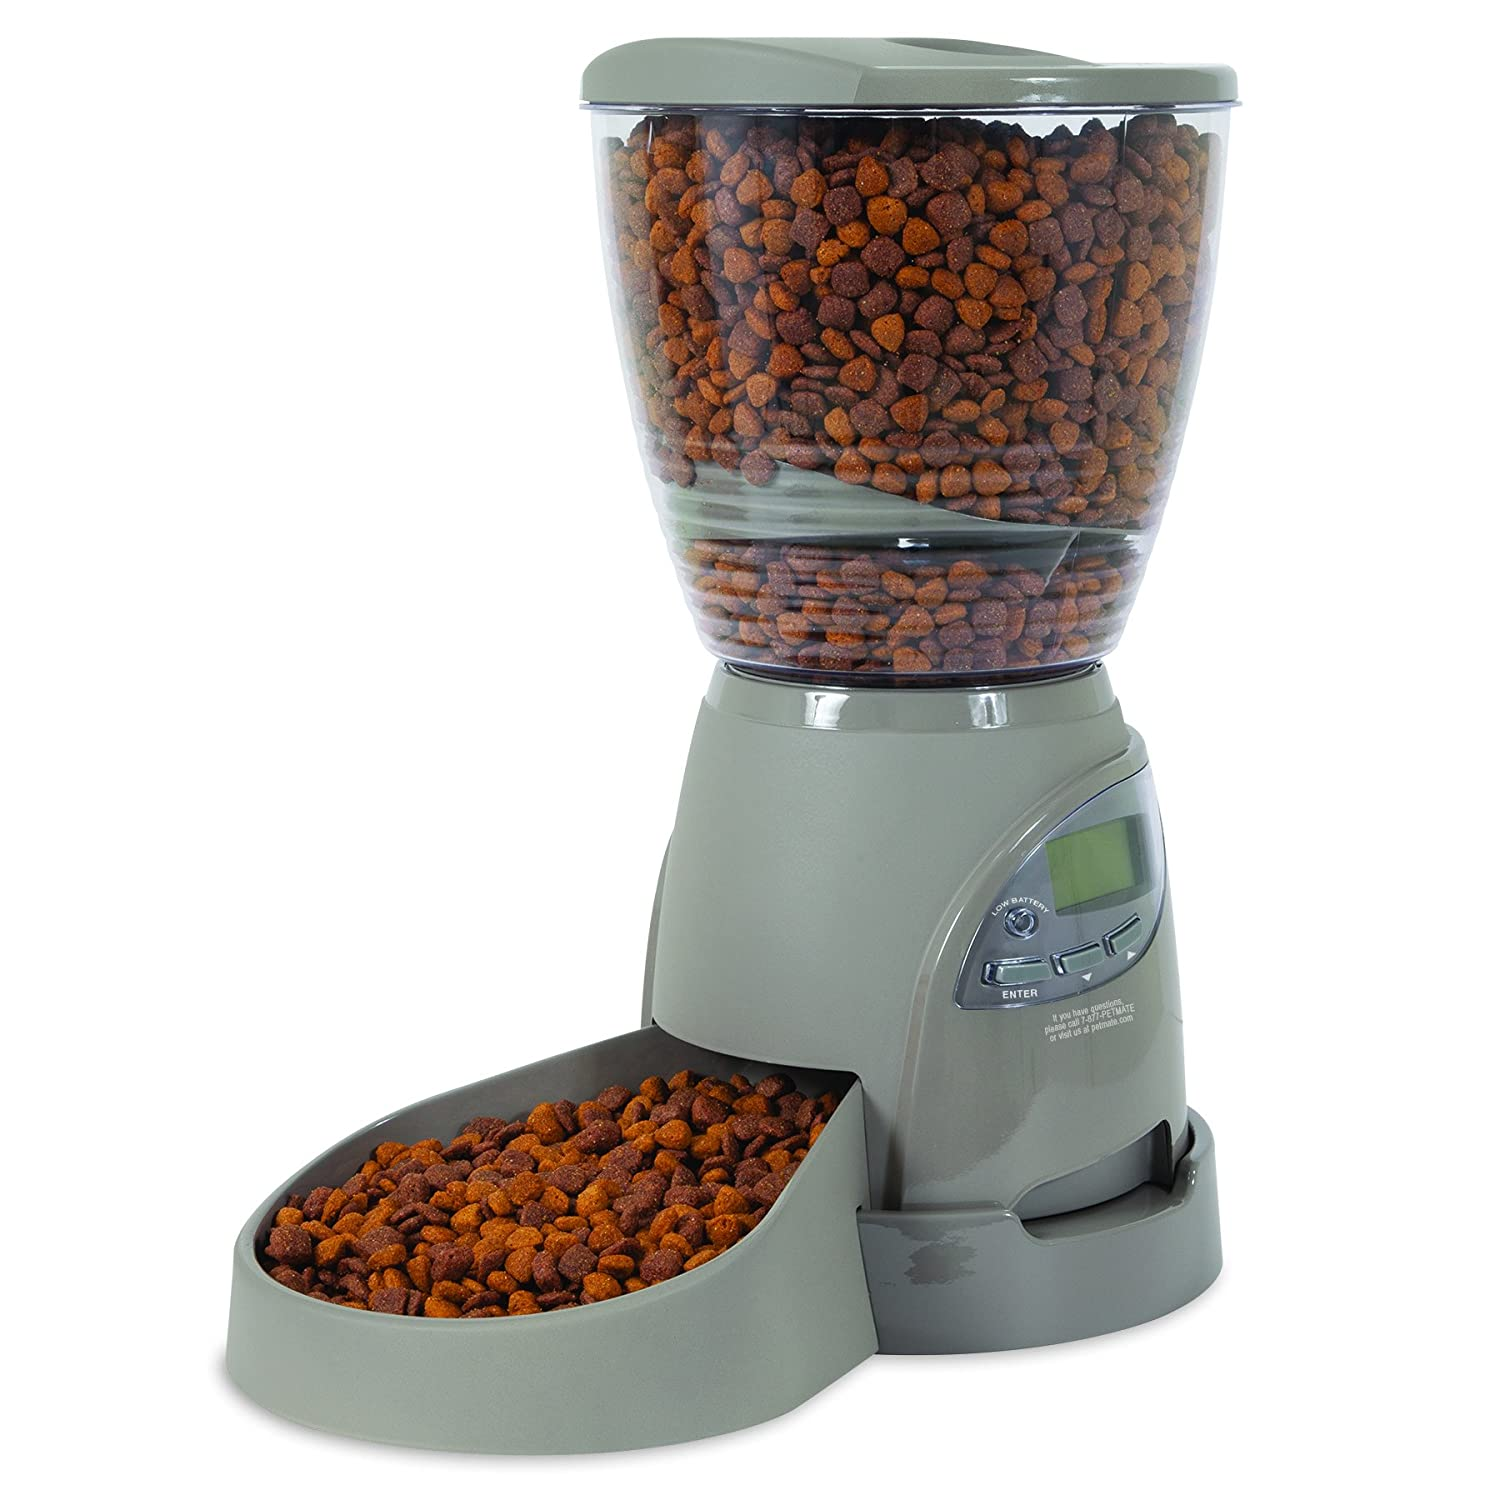 Pet Supplies Petmate Portion Right Automatic Feeder brushed